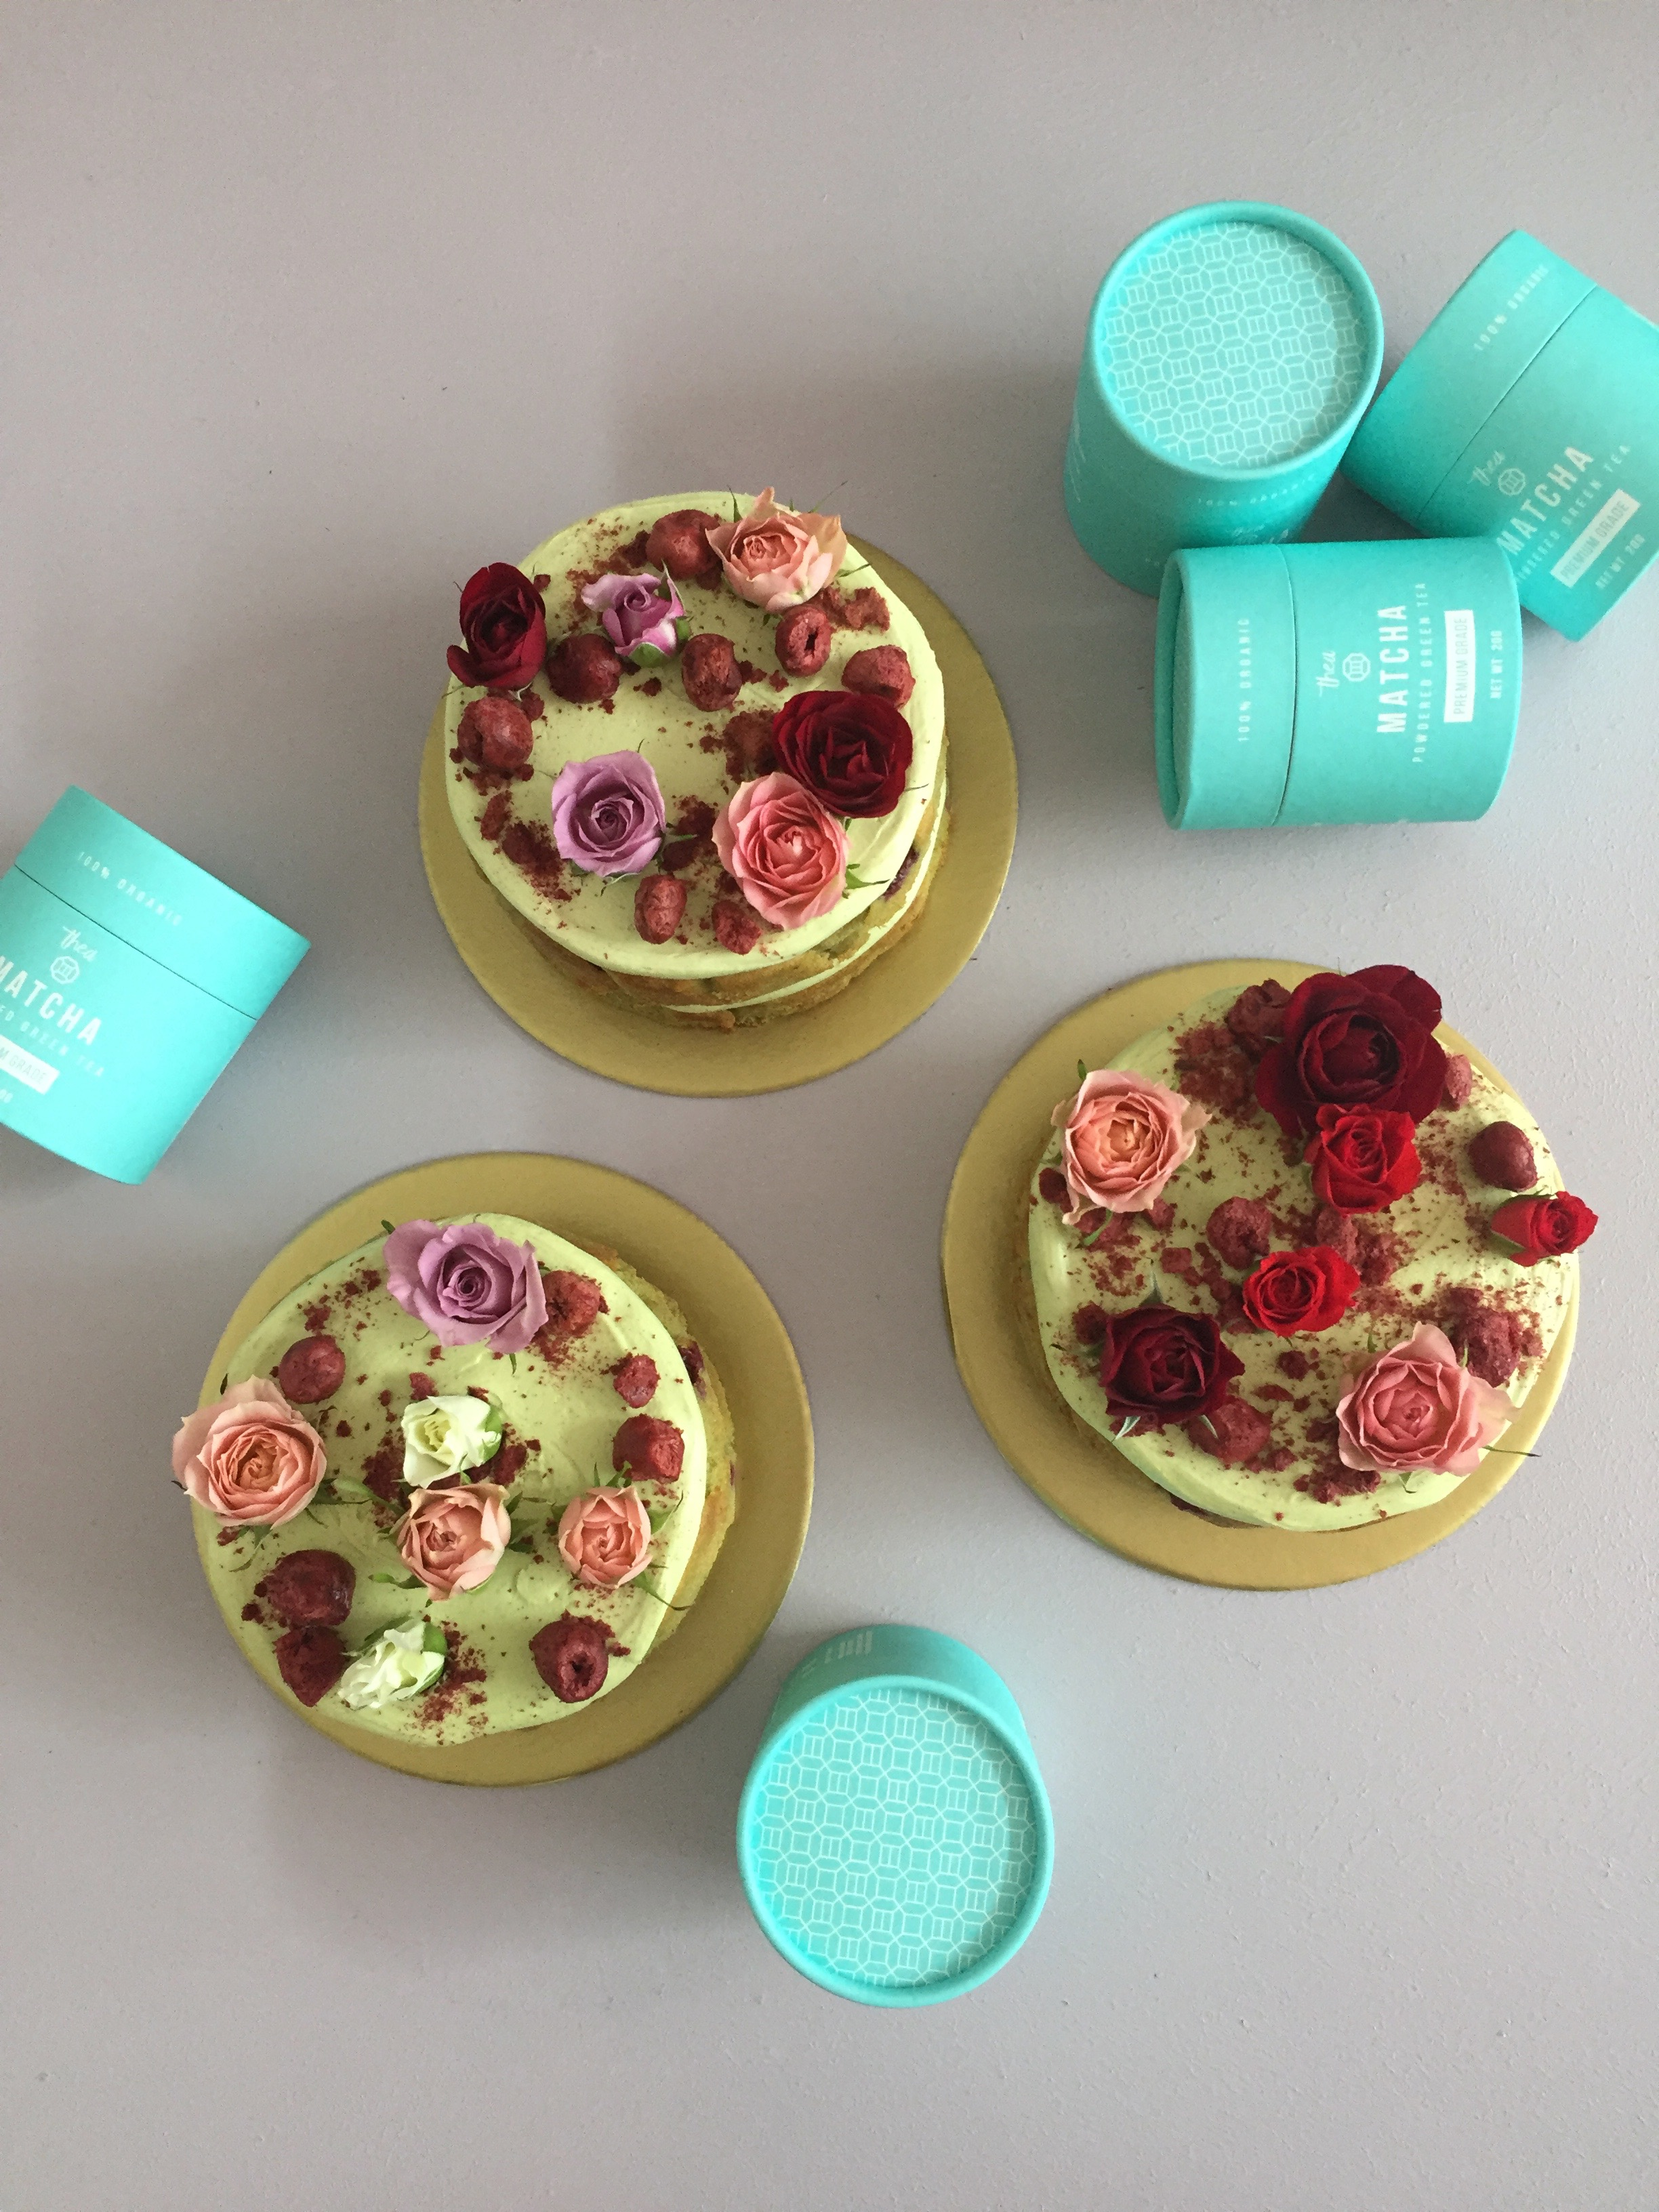 Matcha and Sour Cherry cakes The Caker